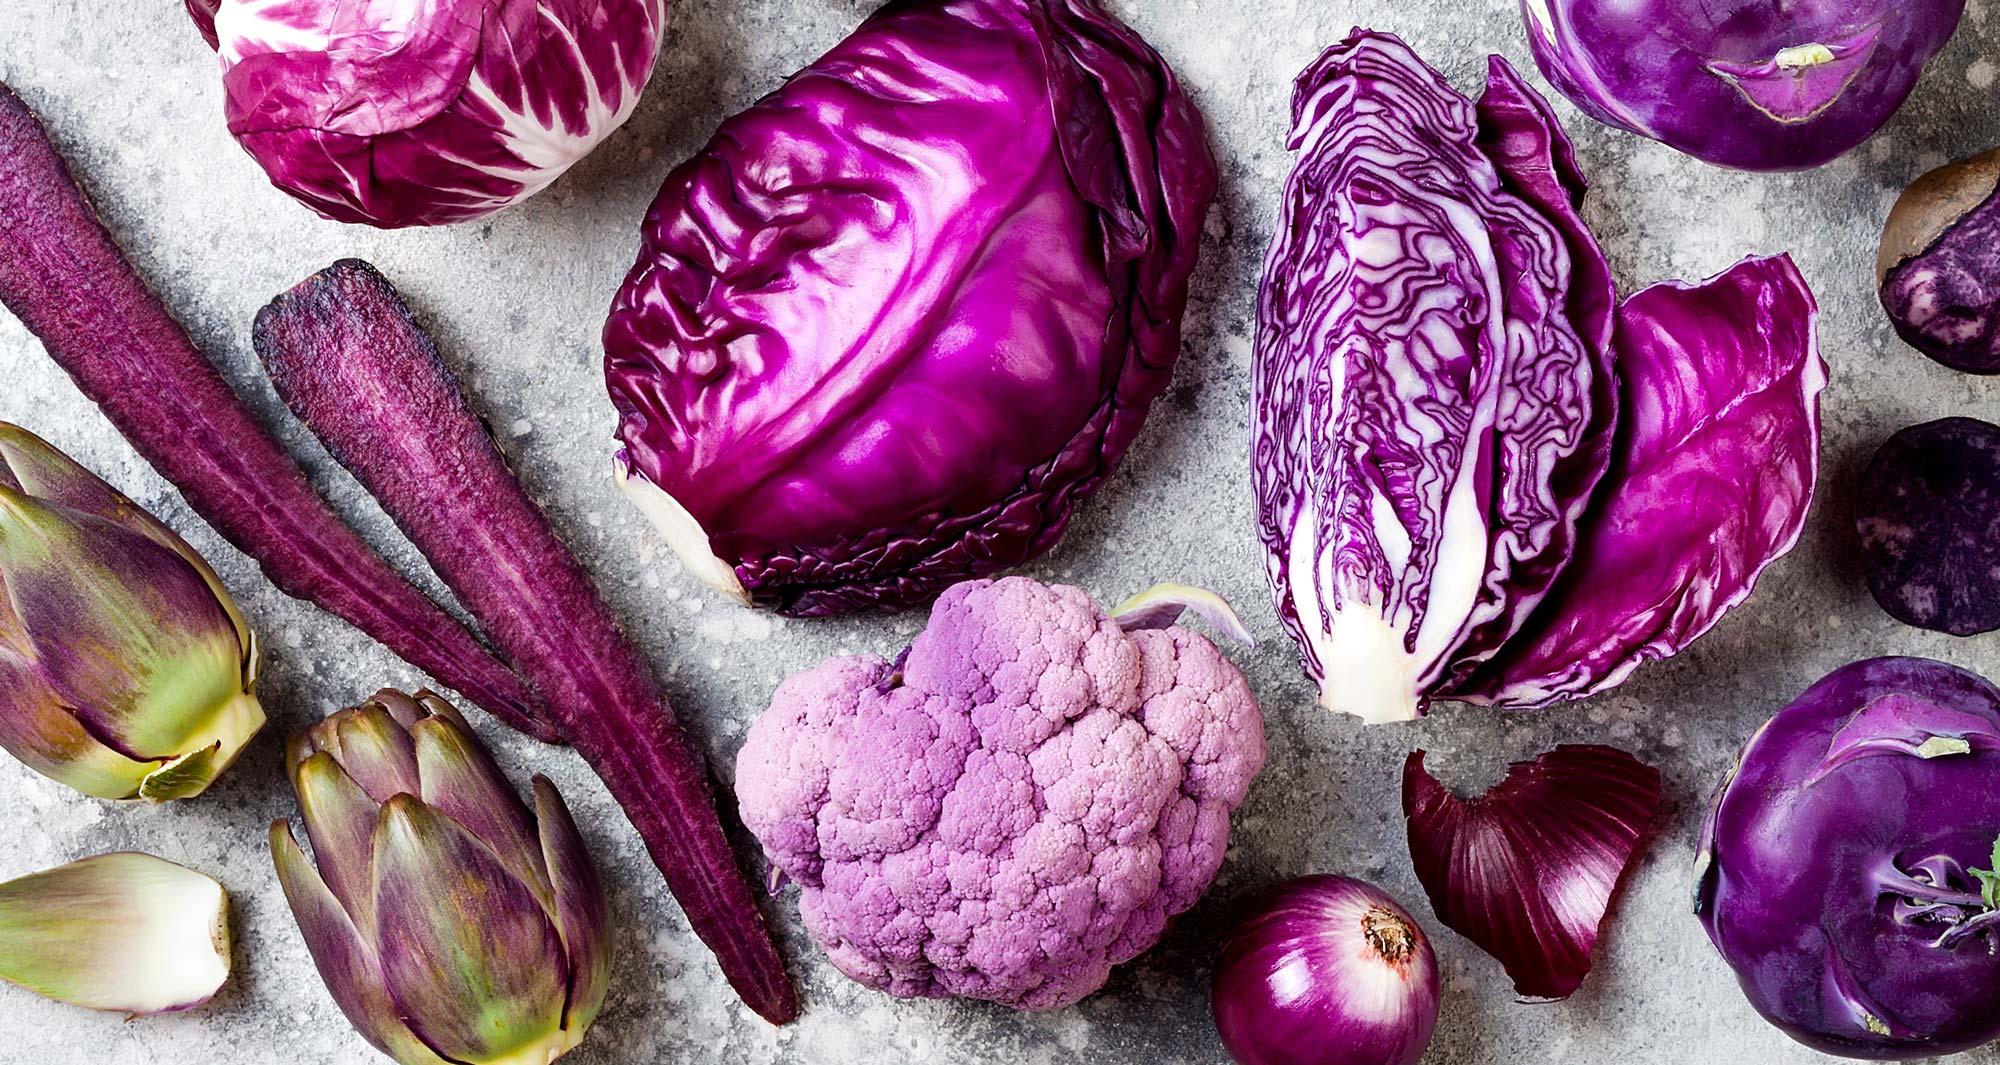 Purple Vegetables: Why You Should Eat These 10 Powerful Veggies